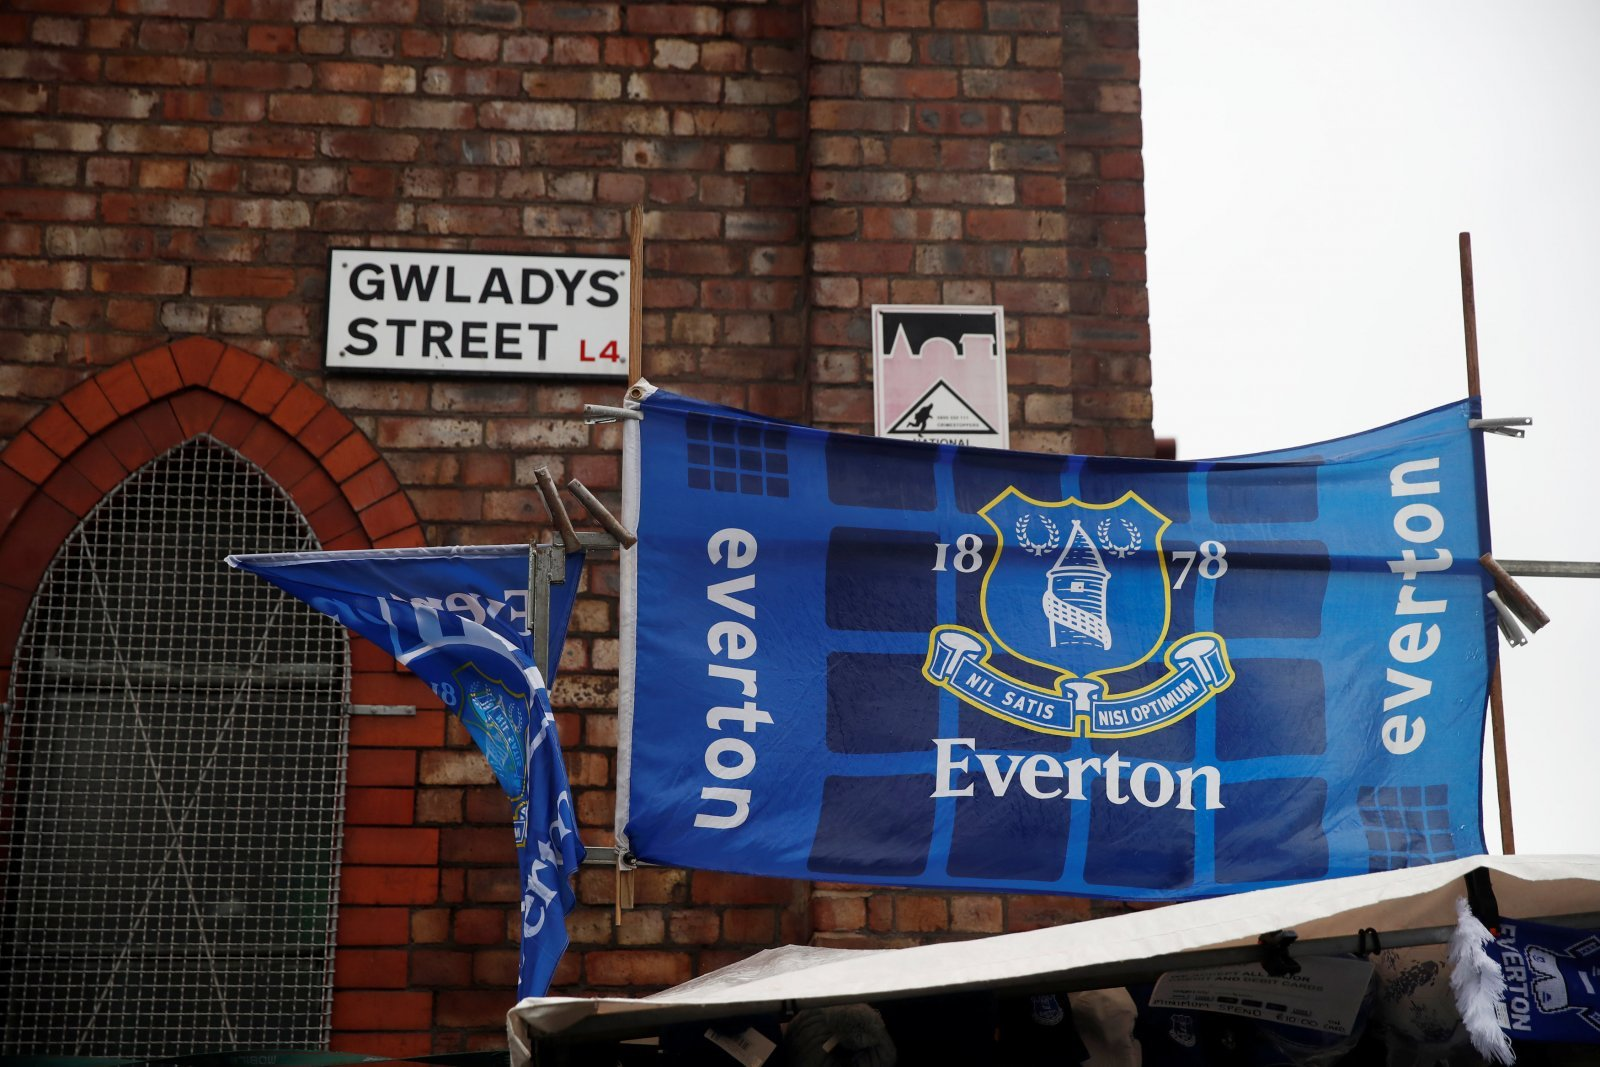 Everton: The extent of the club's money wasting will soon become clear